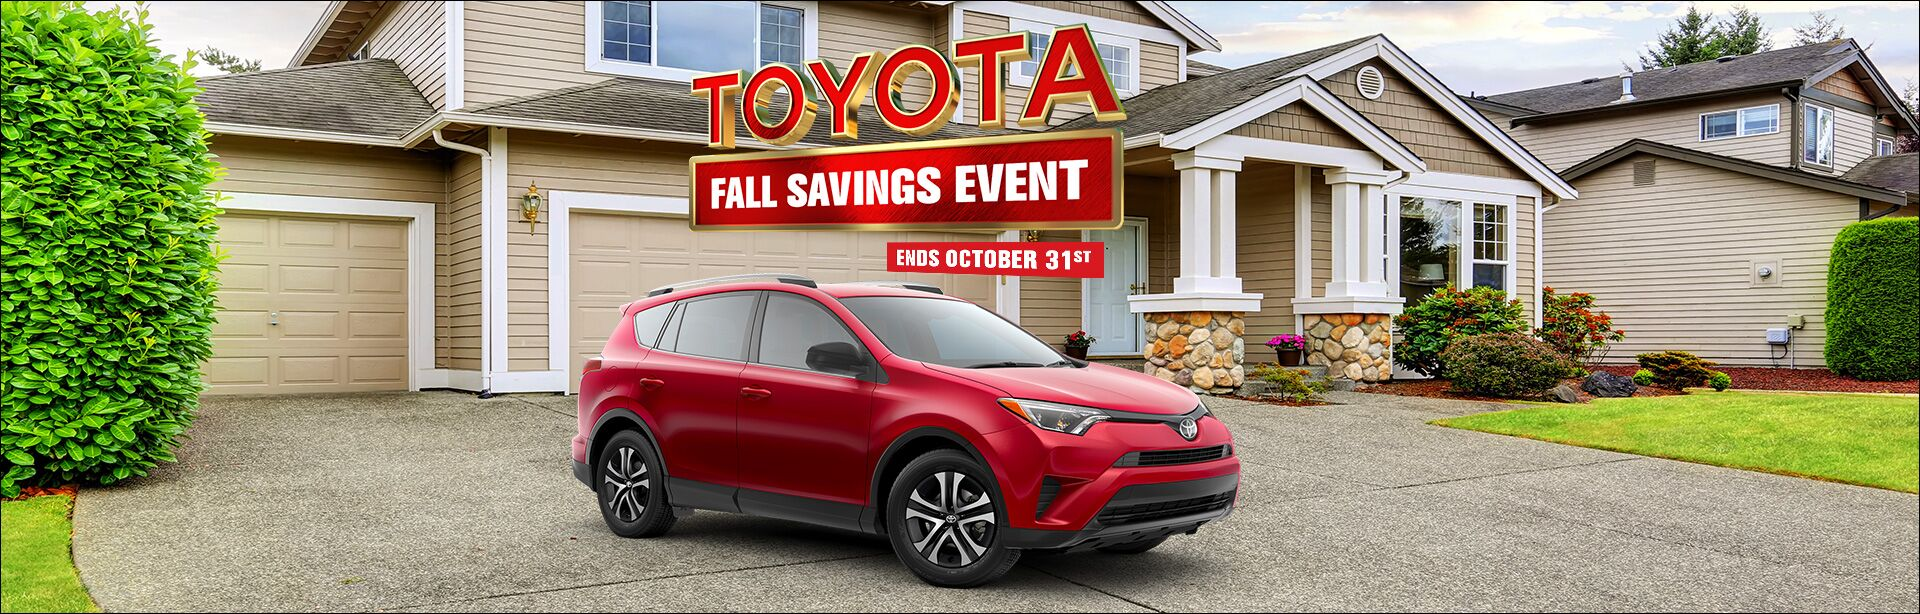 Toyota Fall Savings Event 2018